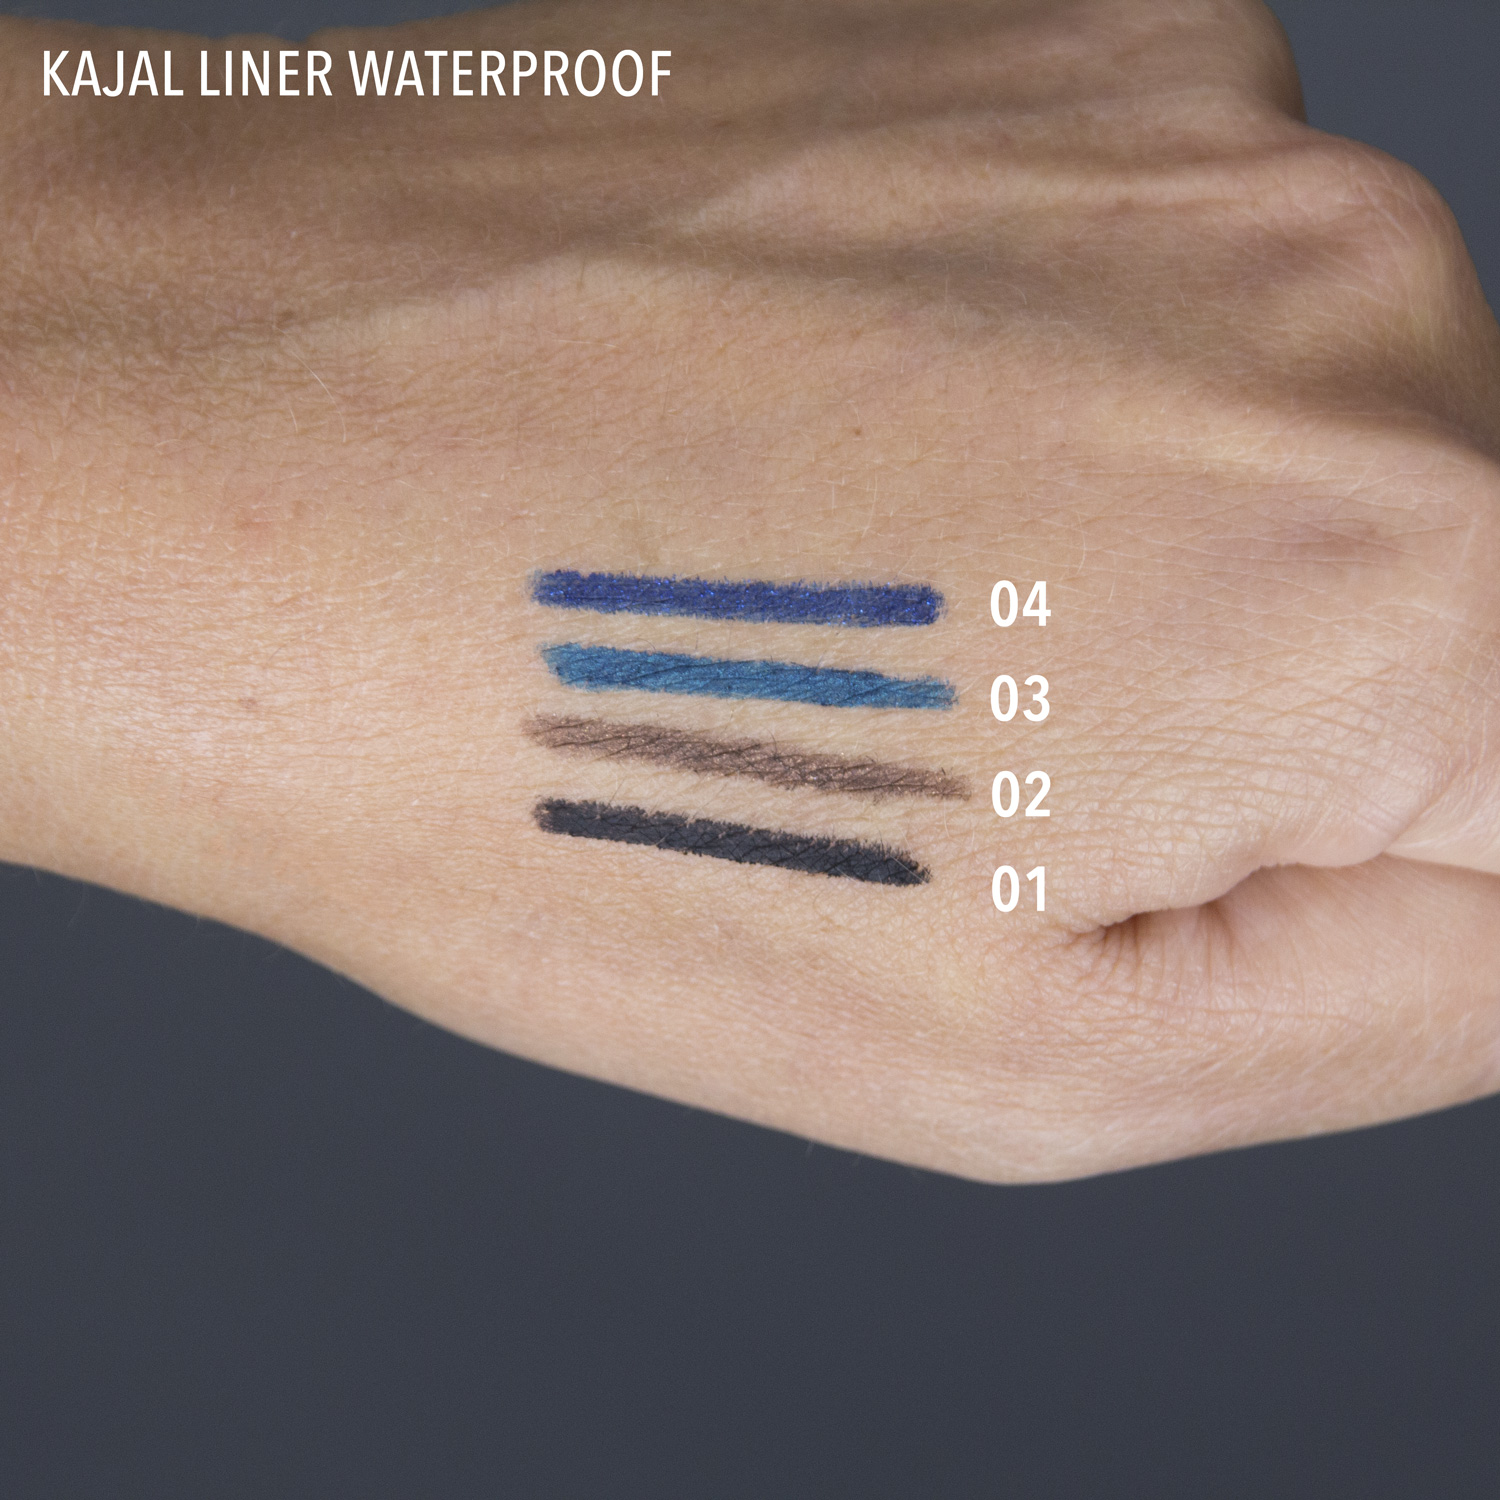 kajal liner waterproof swatch